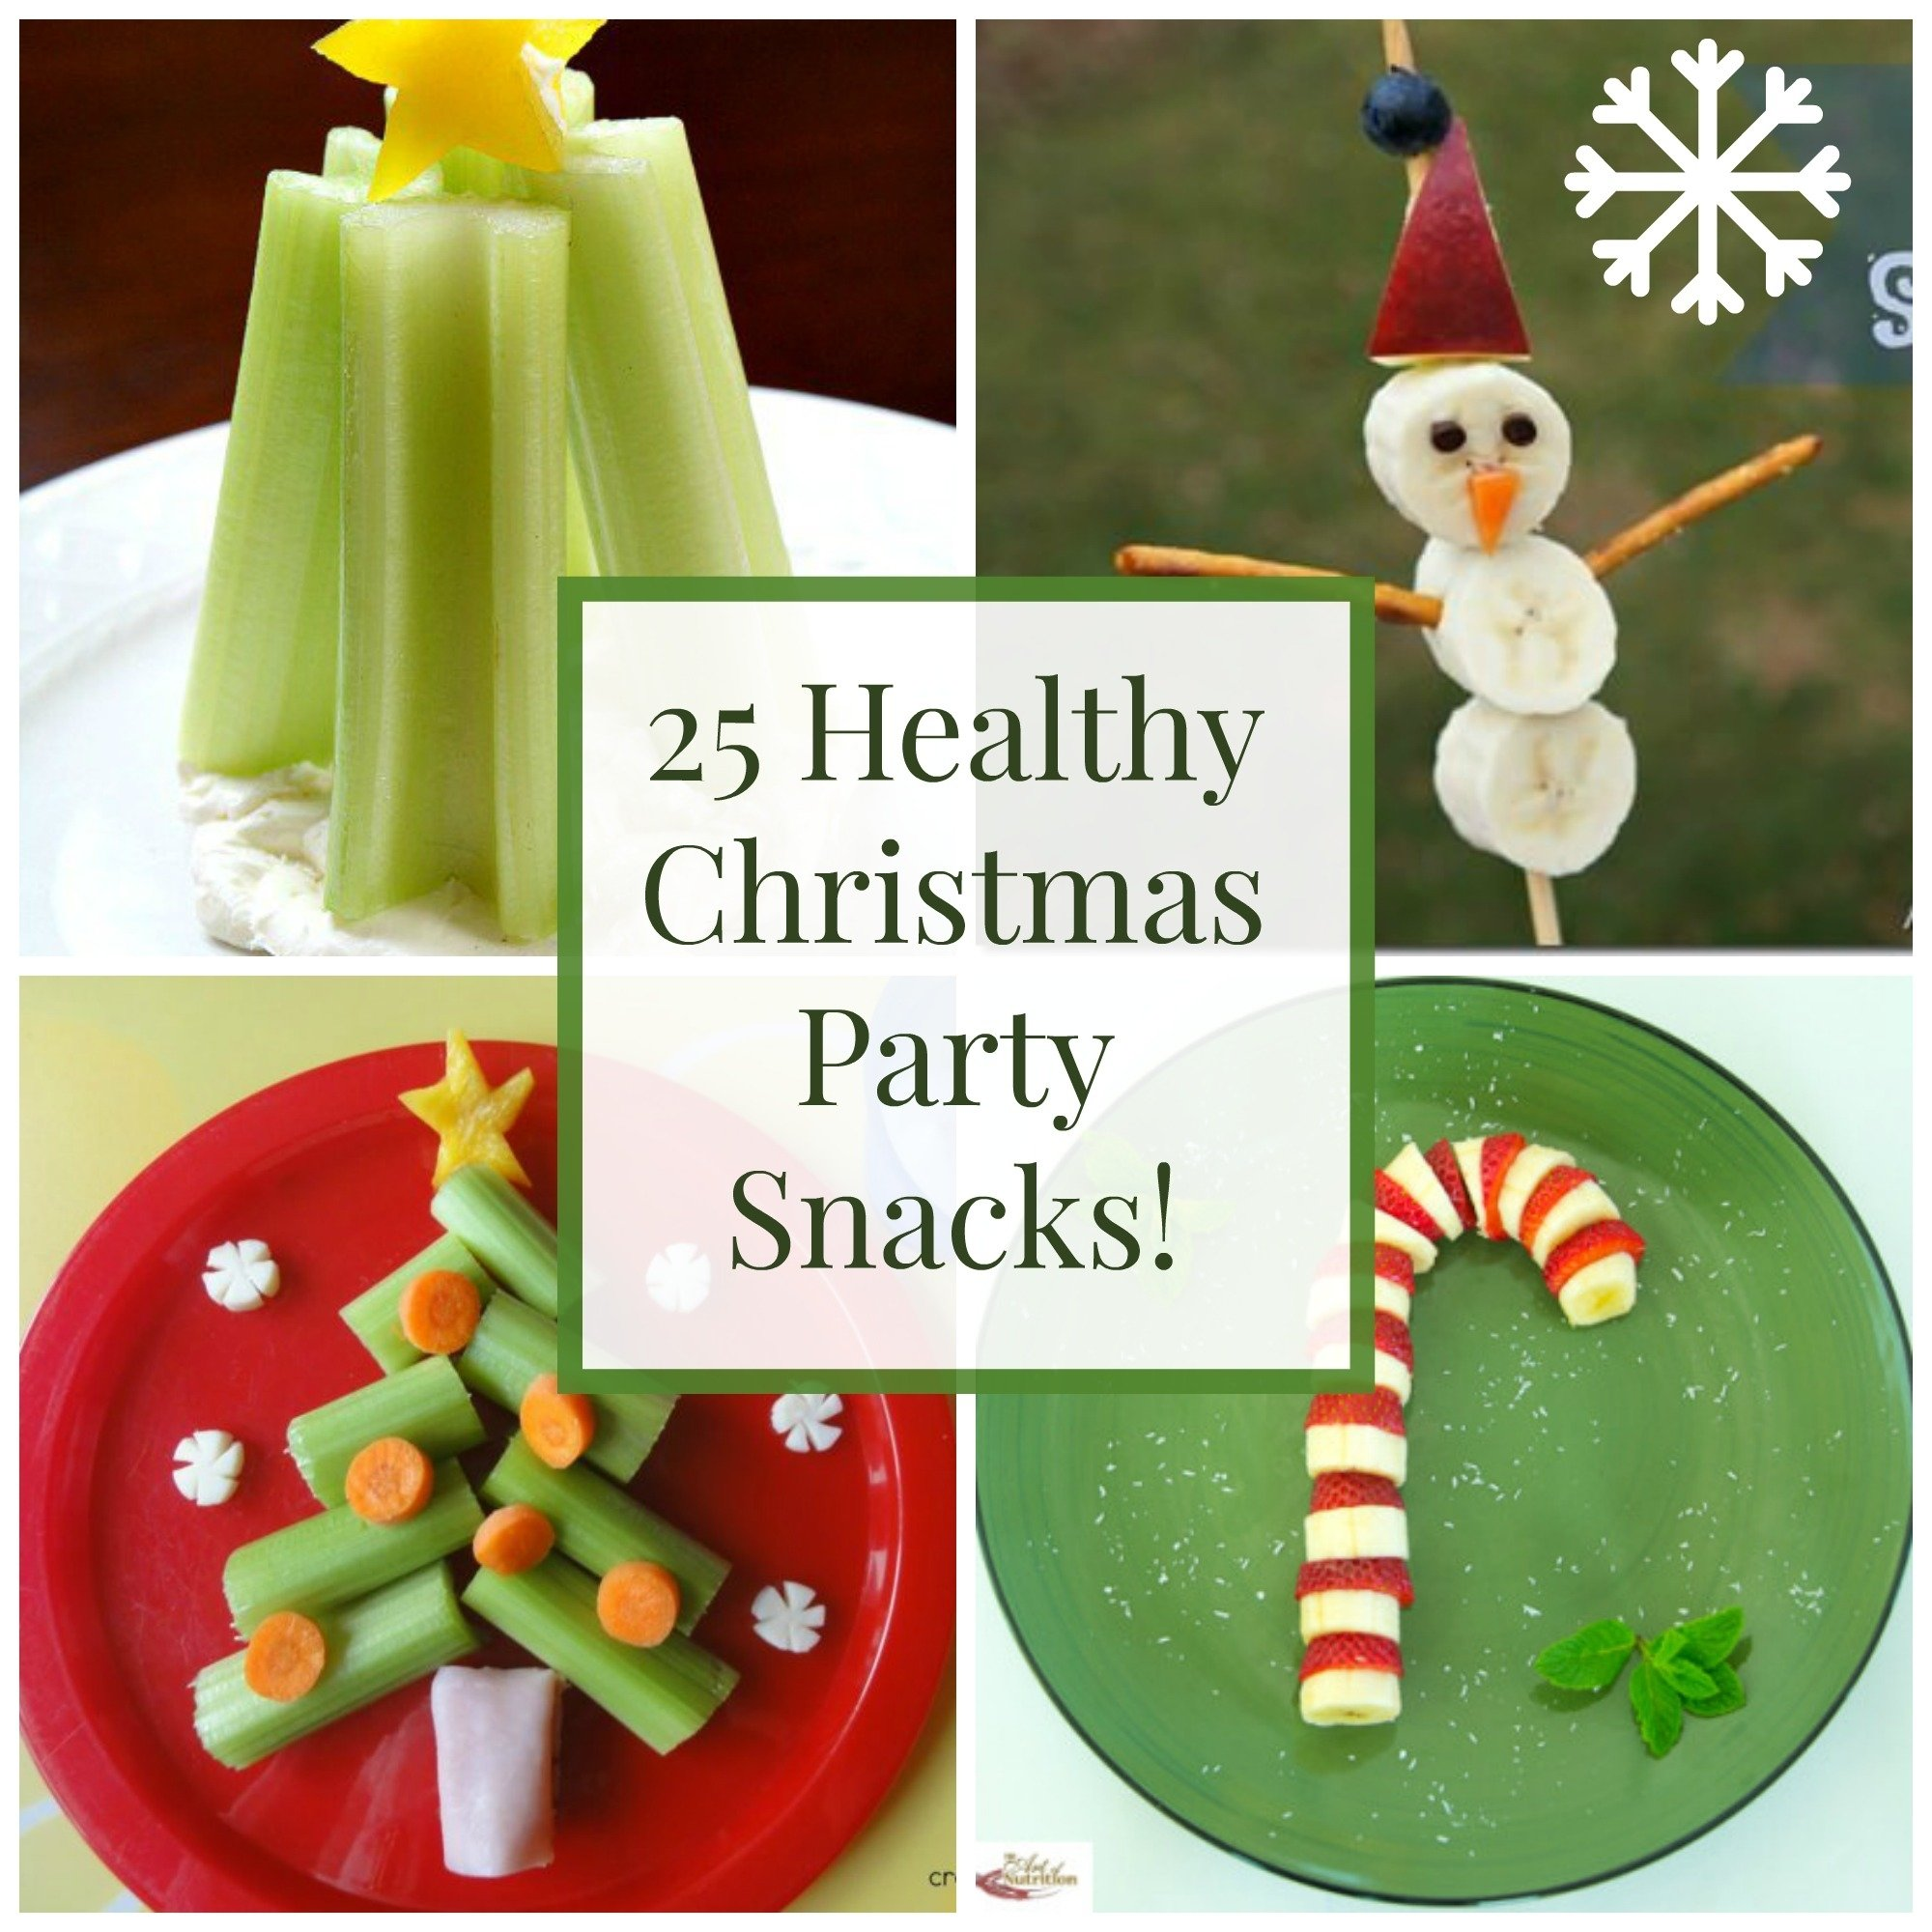 10 Attractive Christmas Pictures Ideas For Kids 25 healthy christmas snacks and party foods healthy ideas for kids 1 2020